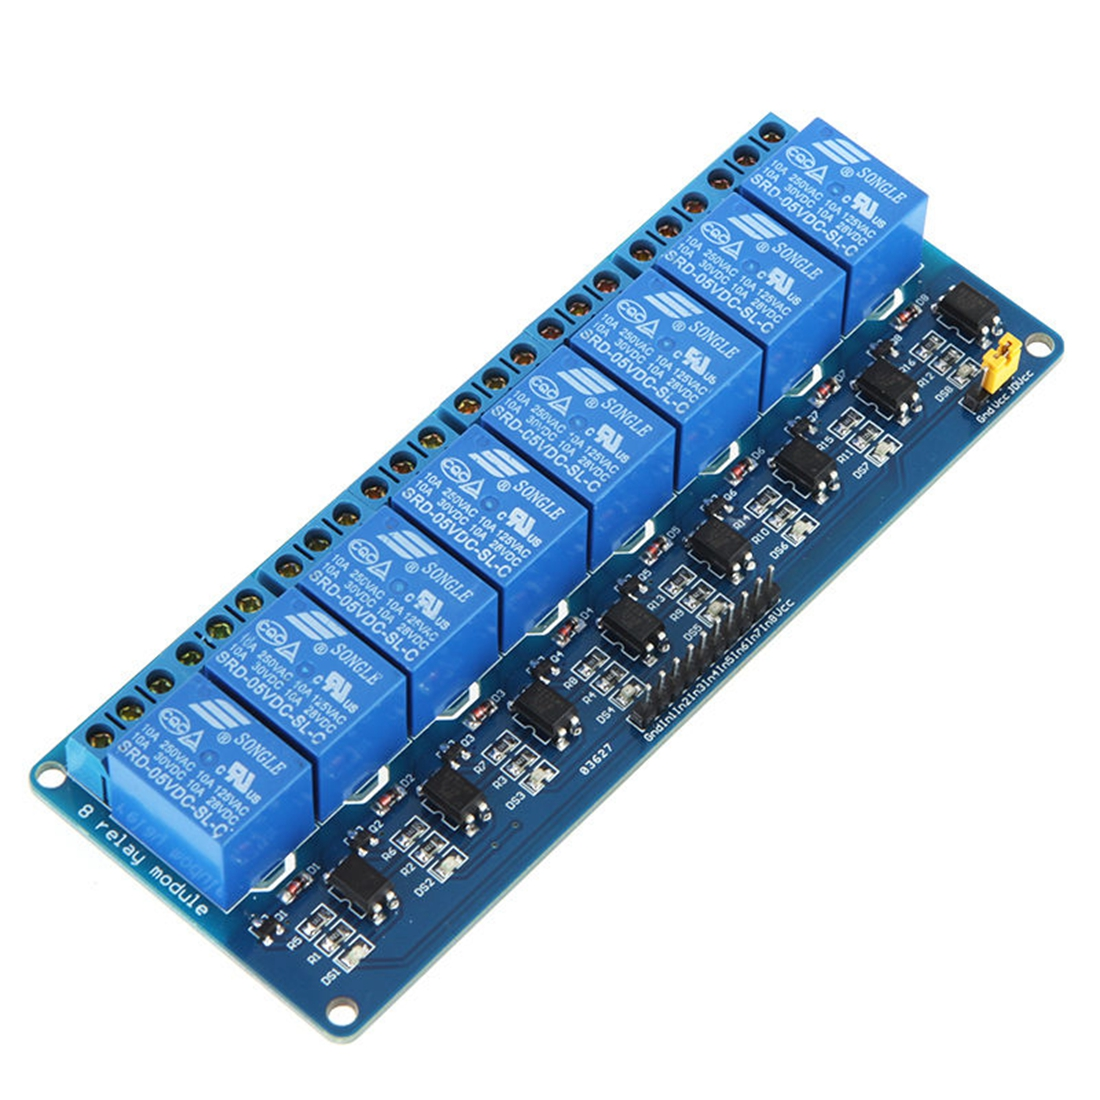 5V 8 Channel Relay Module Board For Arduino AVR PIC MCU DSP ARM 4 channel relay module extension board for arduino